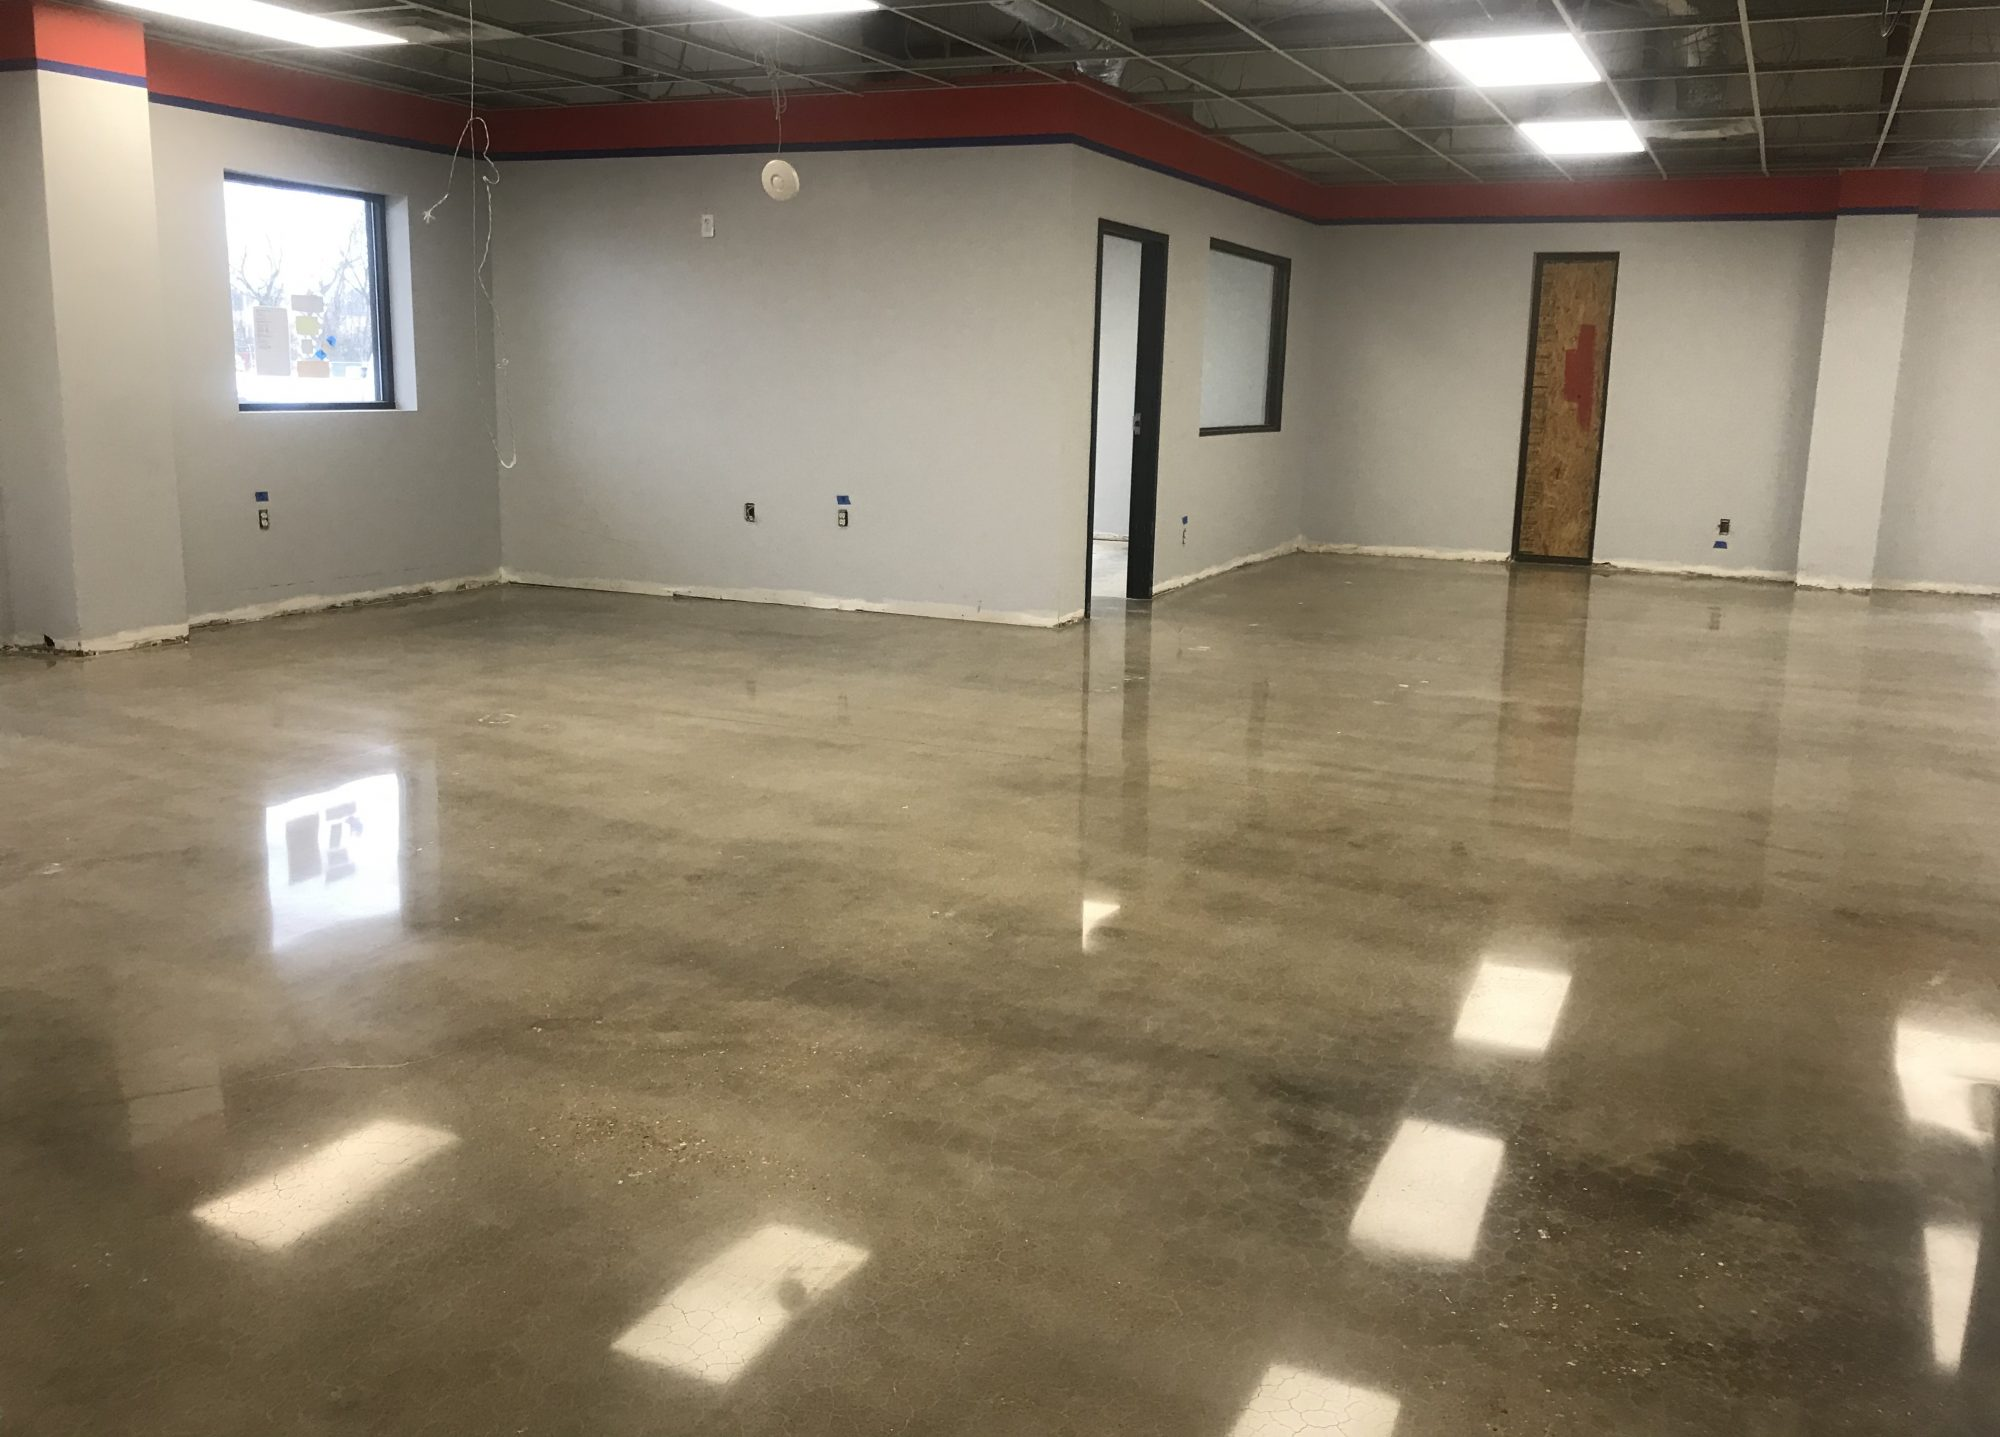 polished concrete office floors, commercial polished concrete, joint repair, joint filling, caulk joints